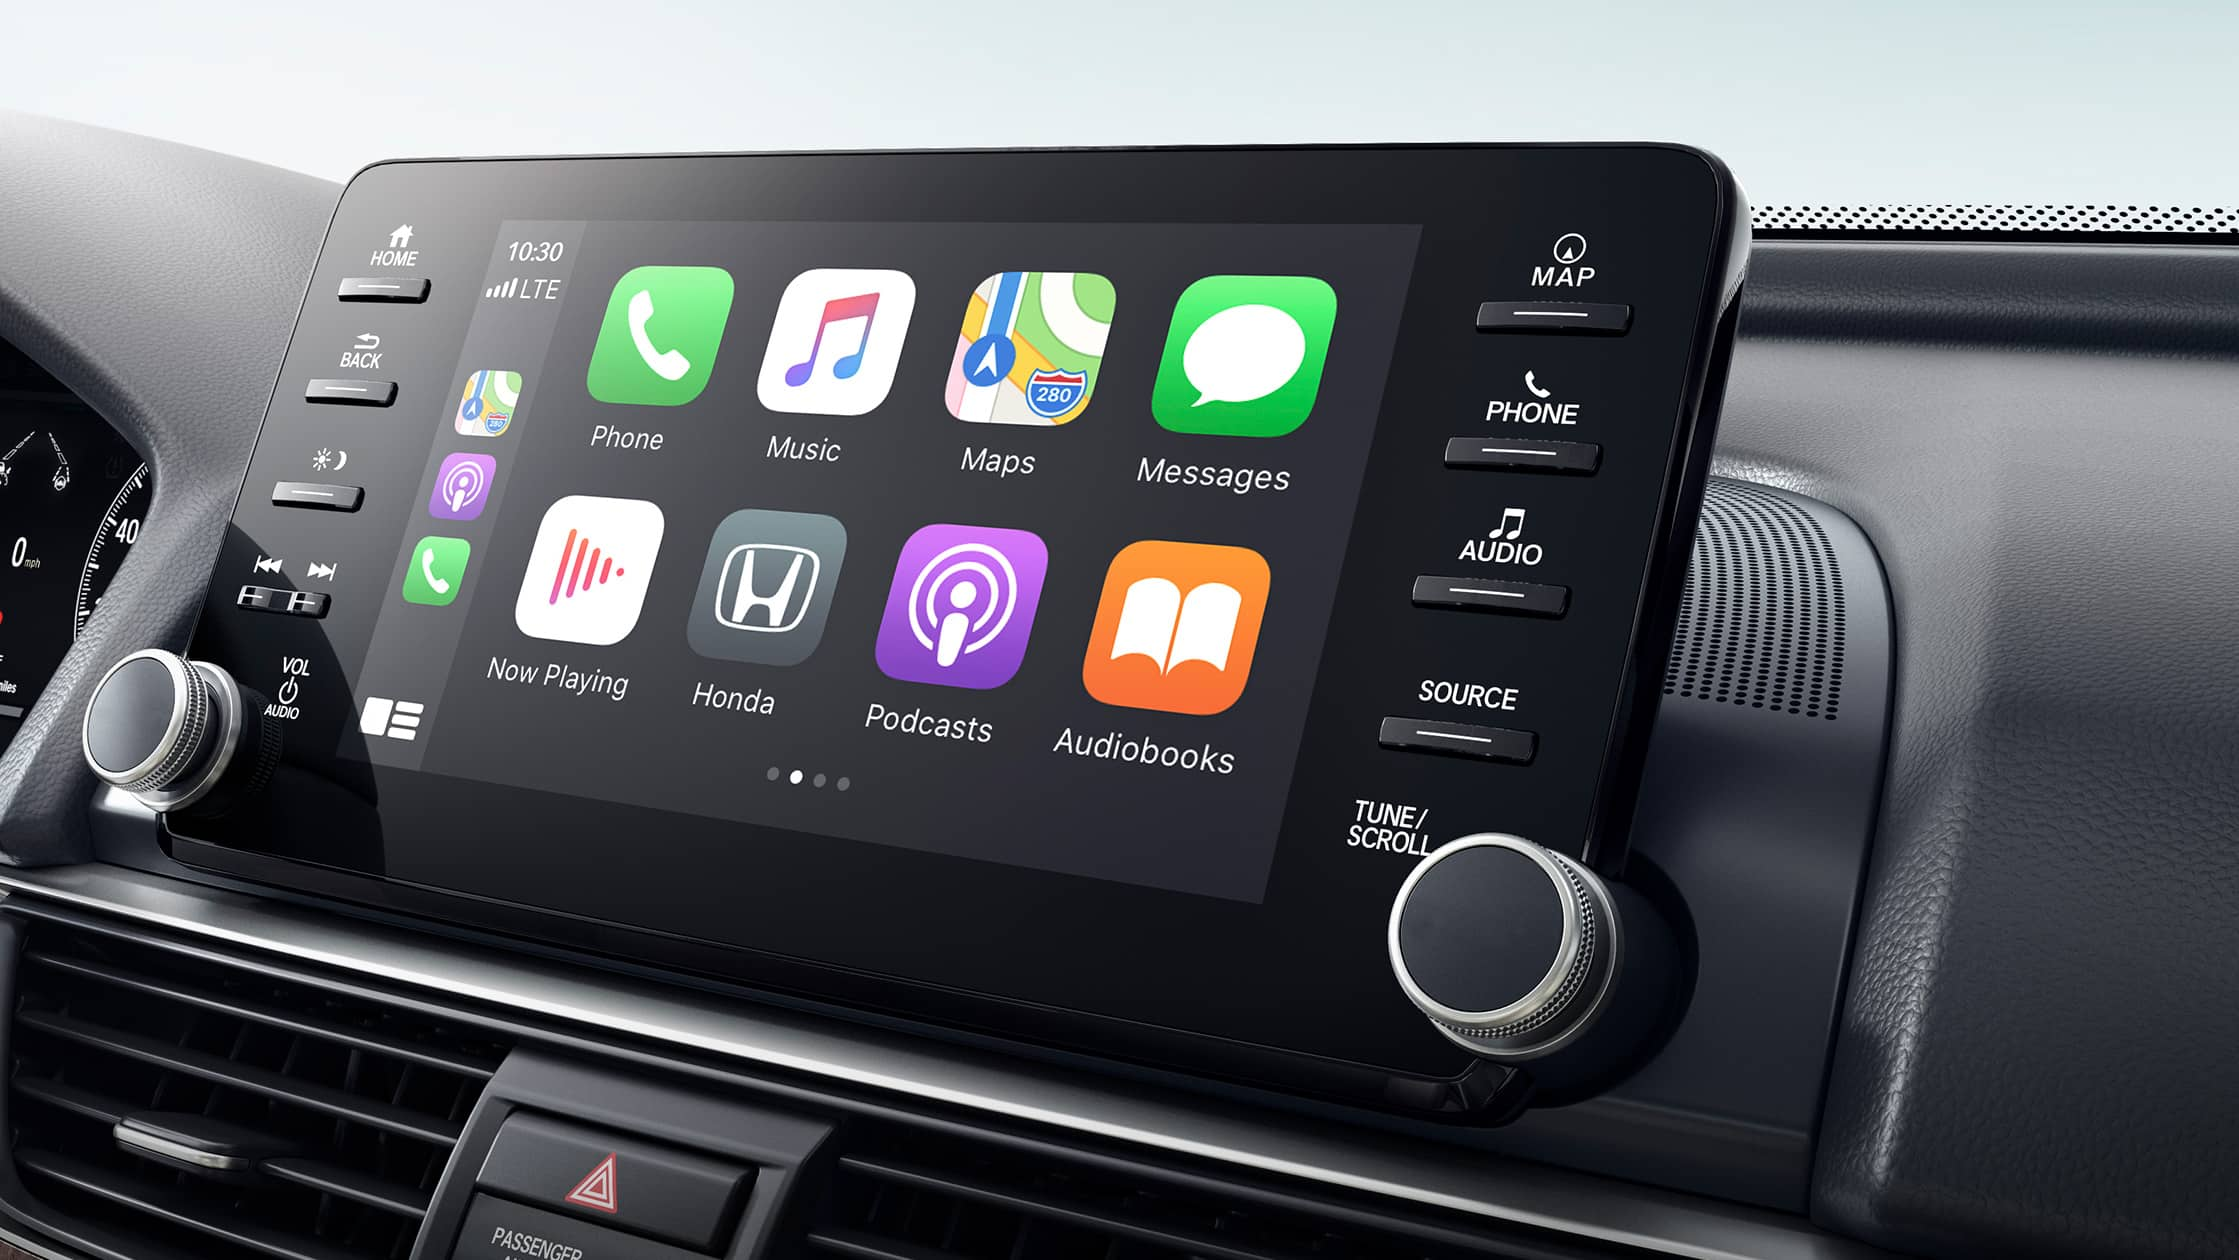 Se muestra la integración inalámbrica con Apple CarPlay® en el sistema de audio en pantalla táctil del Honda Accord Touring 2.0T 2021.